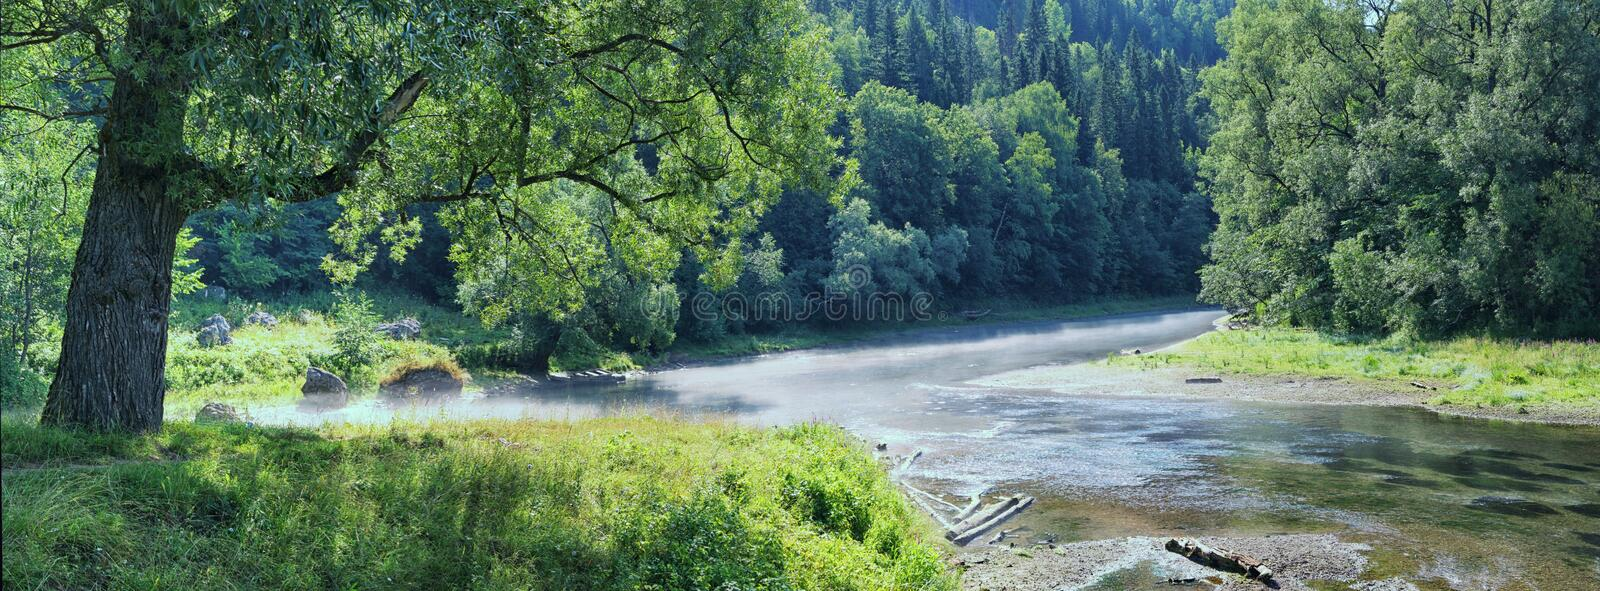 Lush trees on the bank of a shallow river.  royalty free stock photography